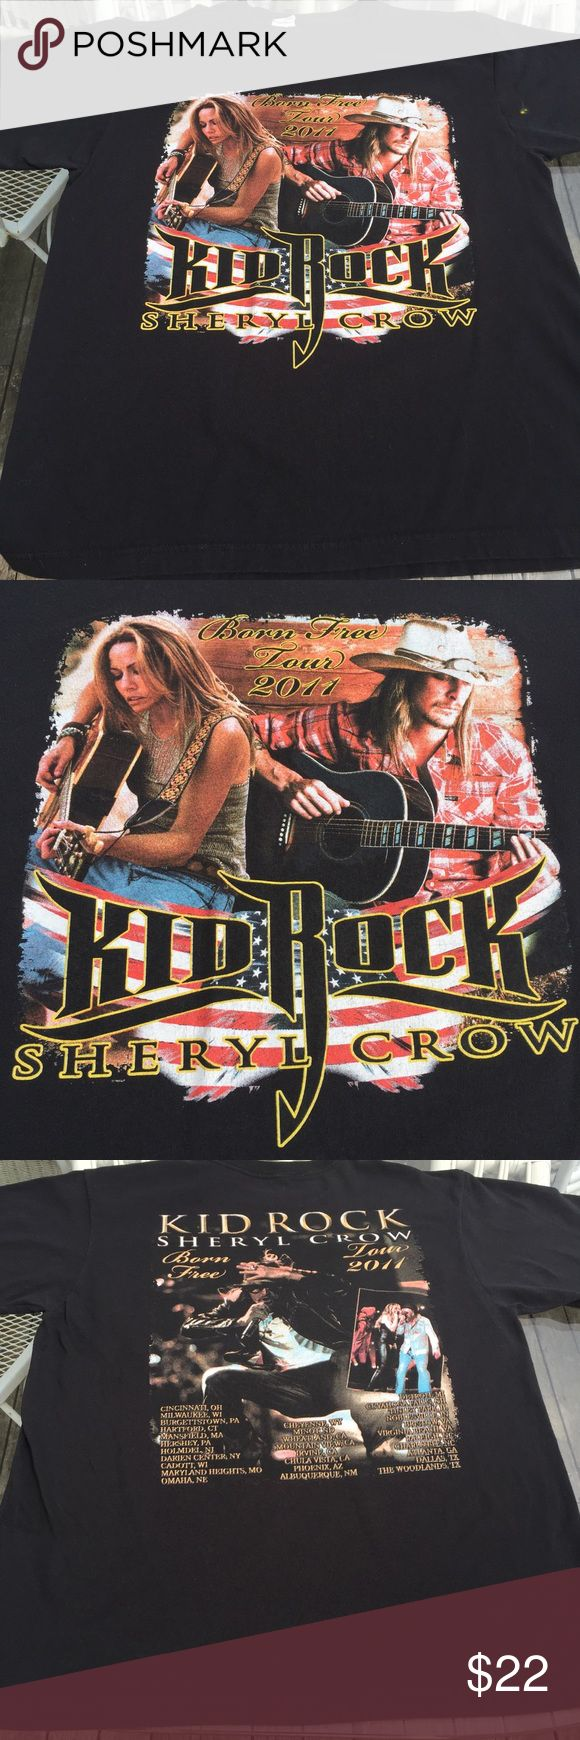 """Kid rock concert T-shirt 2011 Sheryl crow M/L 2011 kid rock Bore Free concert tour tee with Sheryl crow. Back has cities on tour, reads size medium and runs on the large side. Measures 43x27"""" Tops Tees - Short Sleeve"""